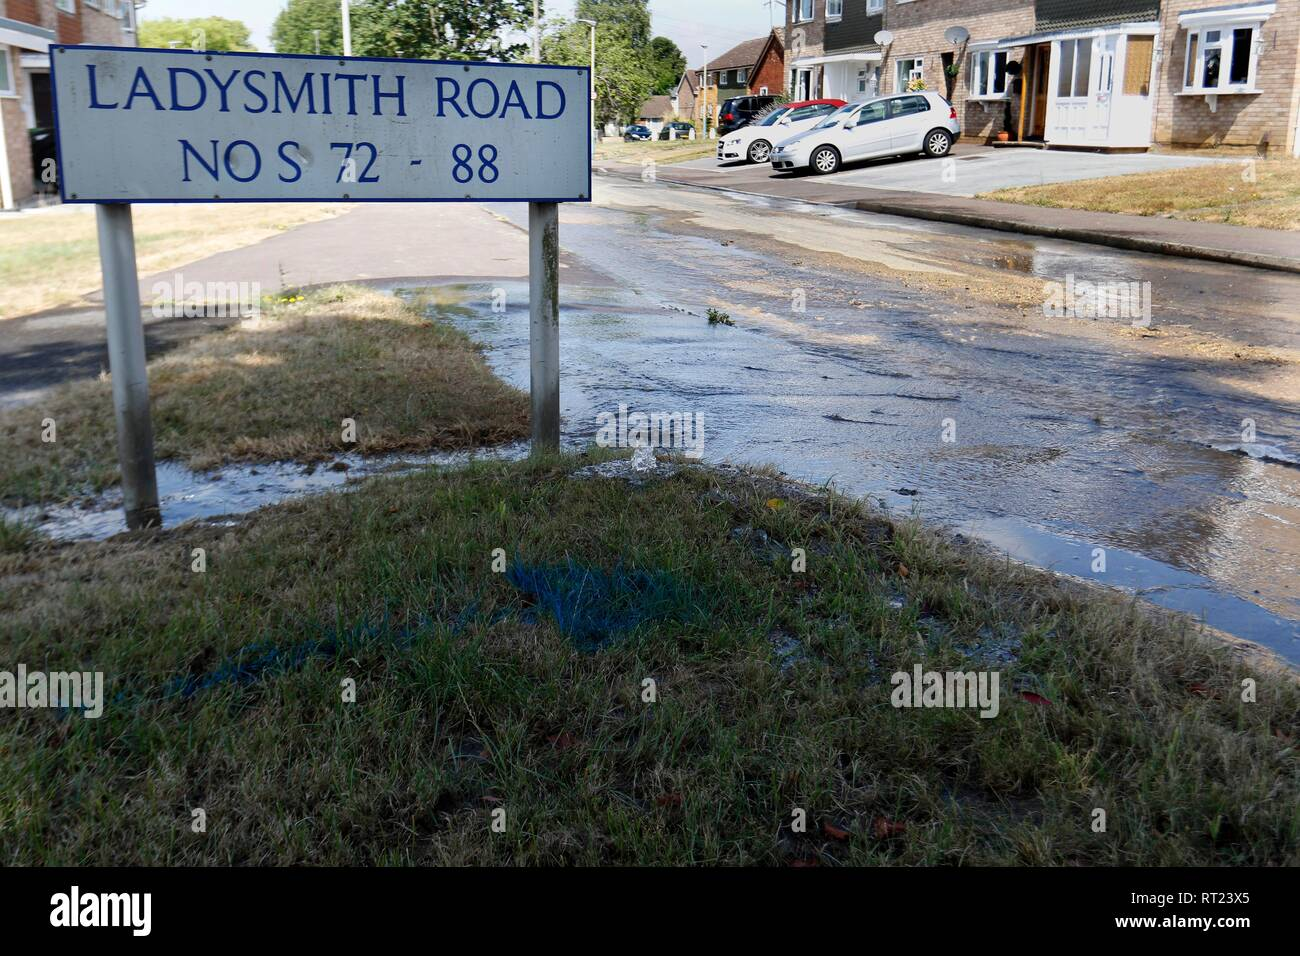 A new water leak flooding the road on Ladysmith Road, Cheltenham. 23rd July 2018 - Stock Image